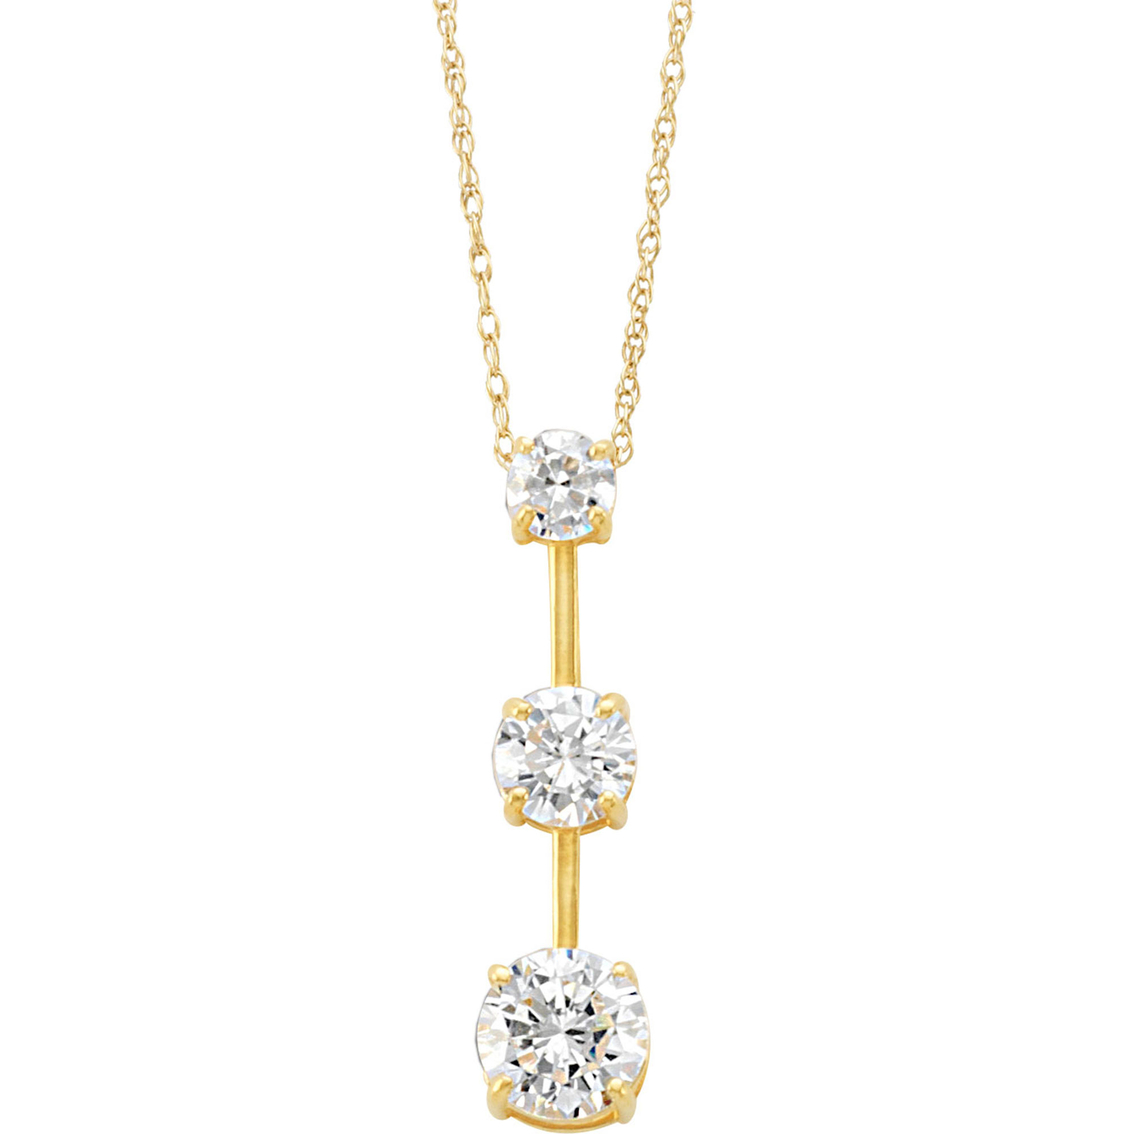 14k Yellow Gold 3 Stone Cubic Zirconia Journey Pendant